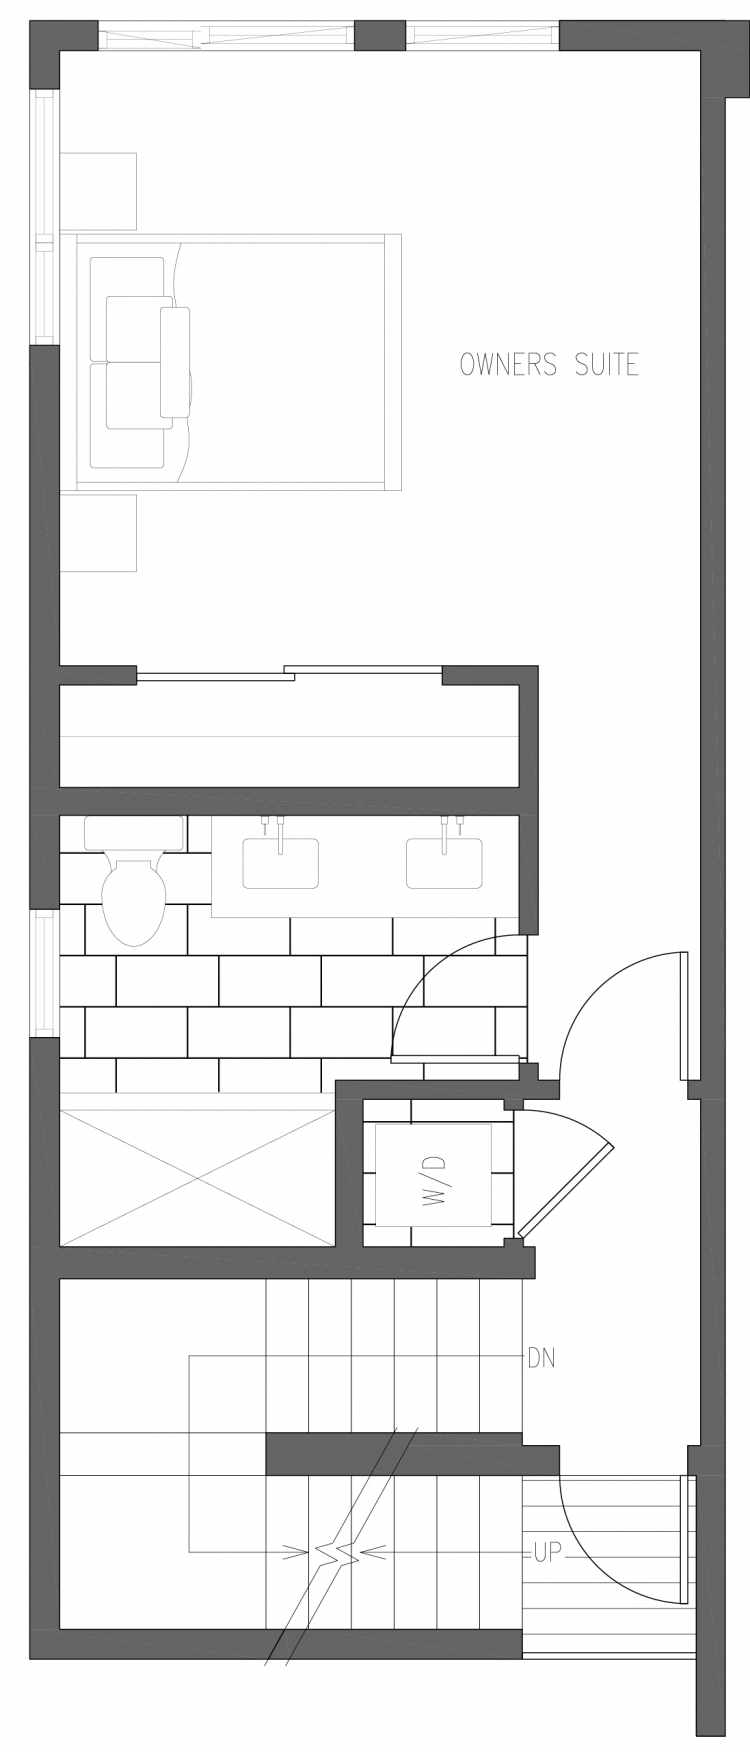 Third Floor Plan of 6411 14th Ave NW, One of the Oleana Townhomes in Ballard by Isola Homes